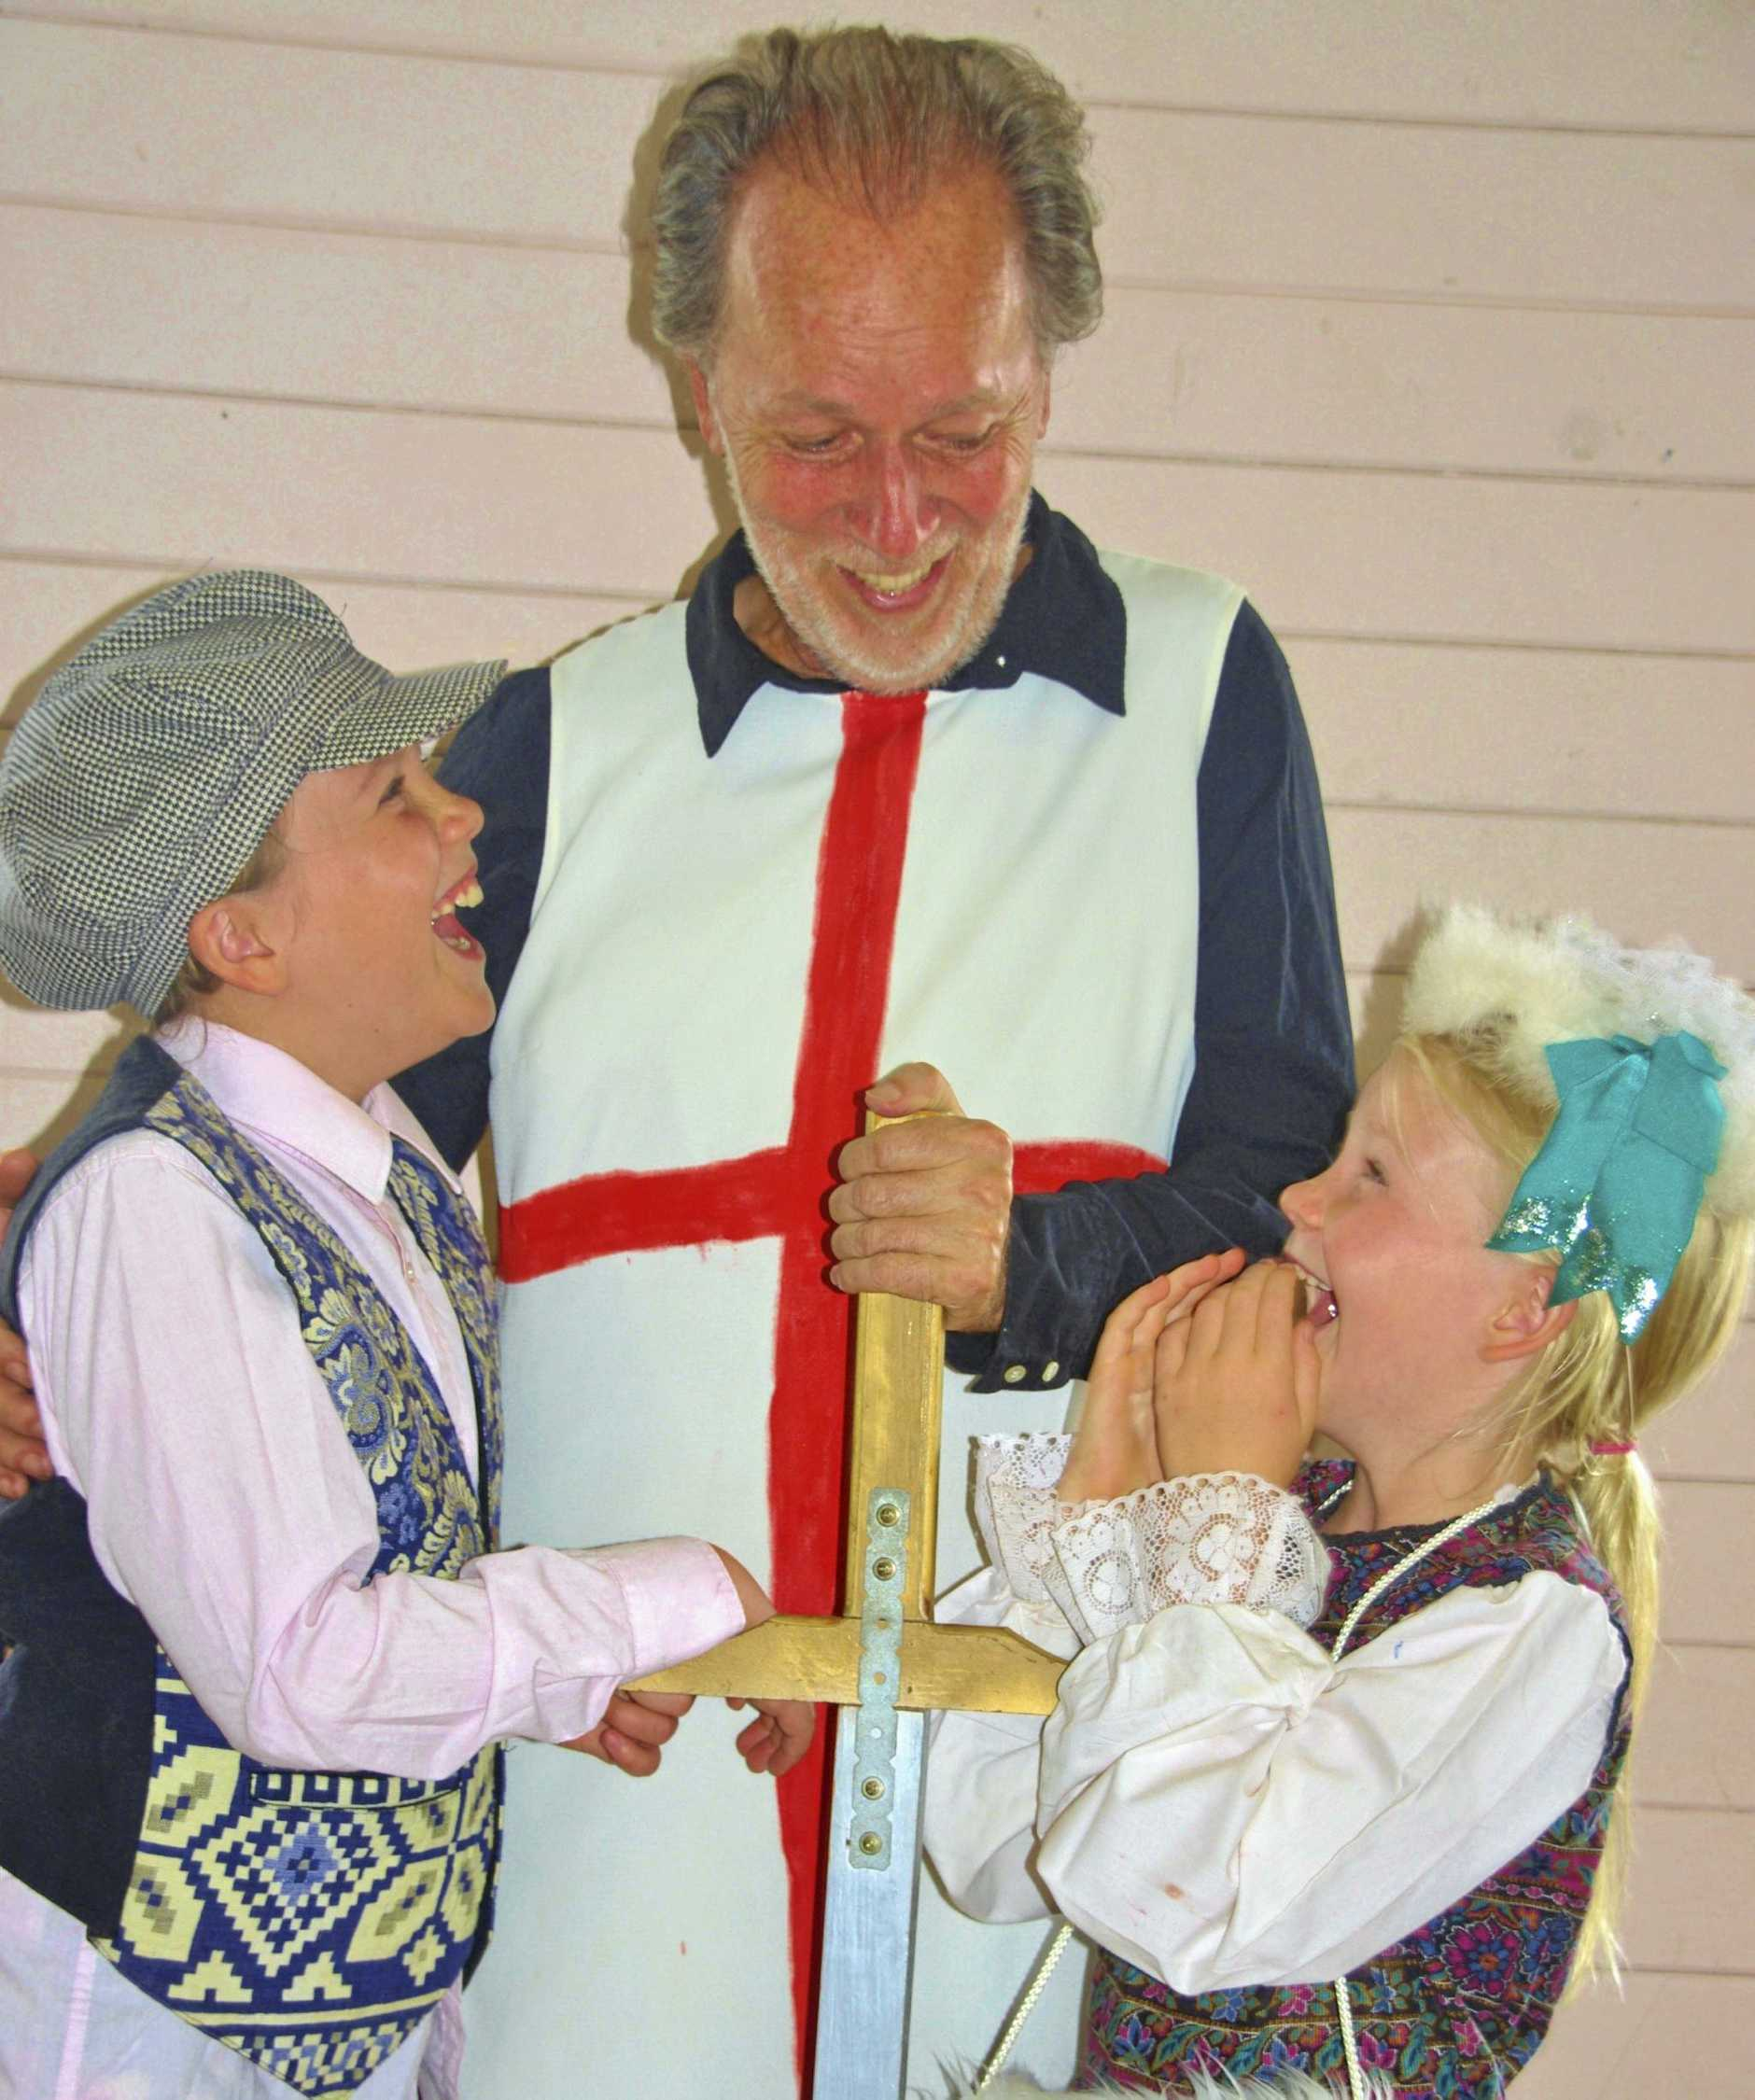 St George promises Olivia and Tim Tim not to hurt Albert, their dragon friend.